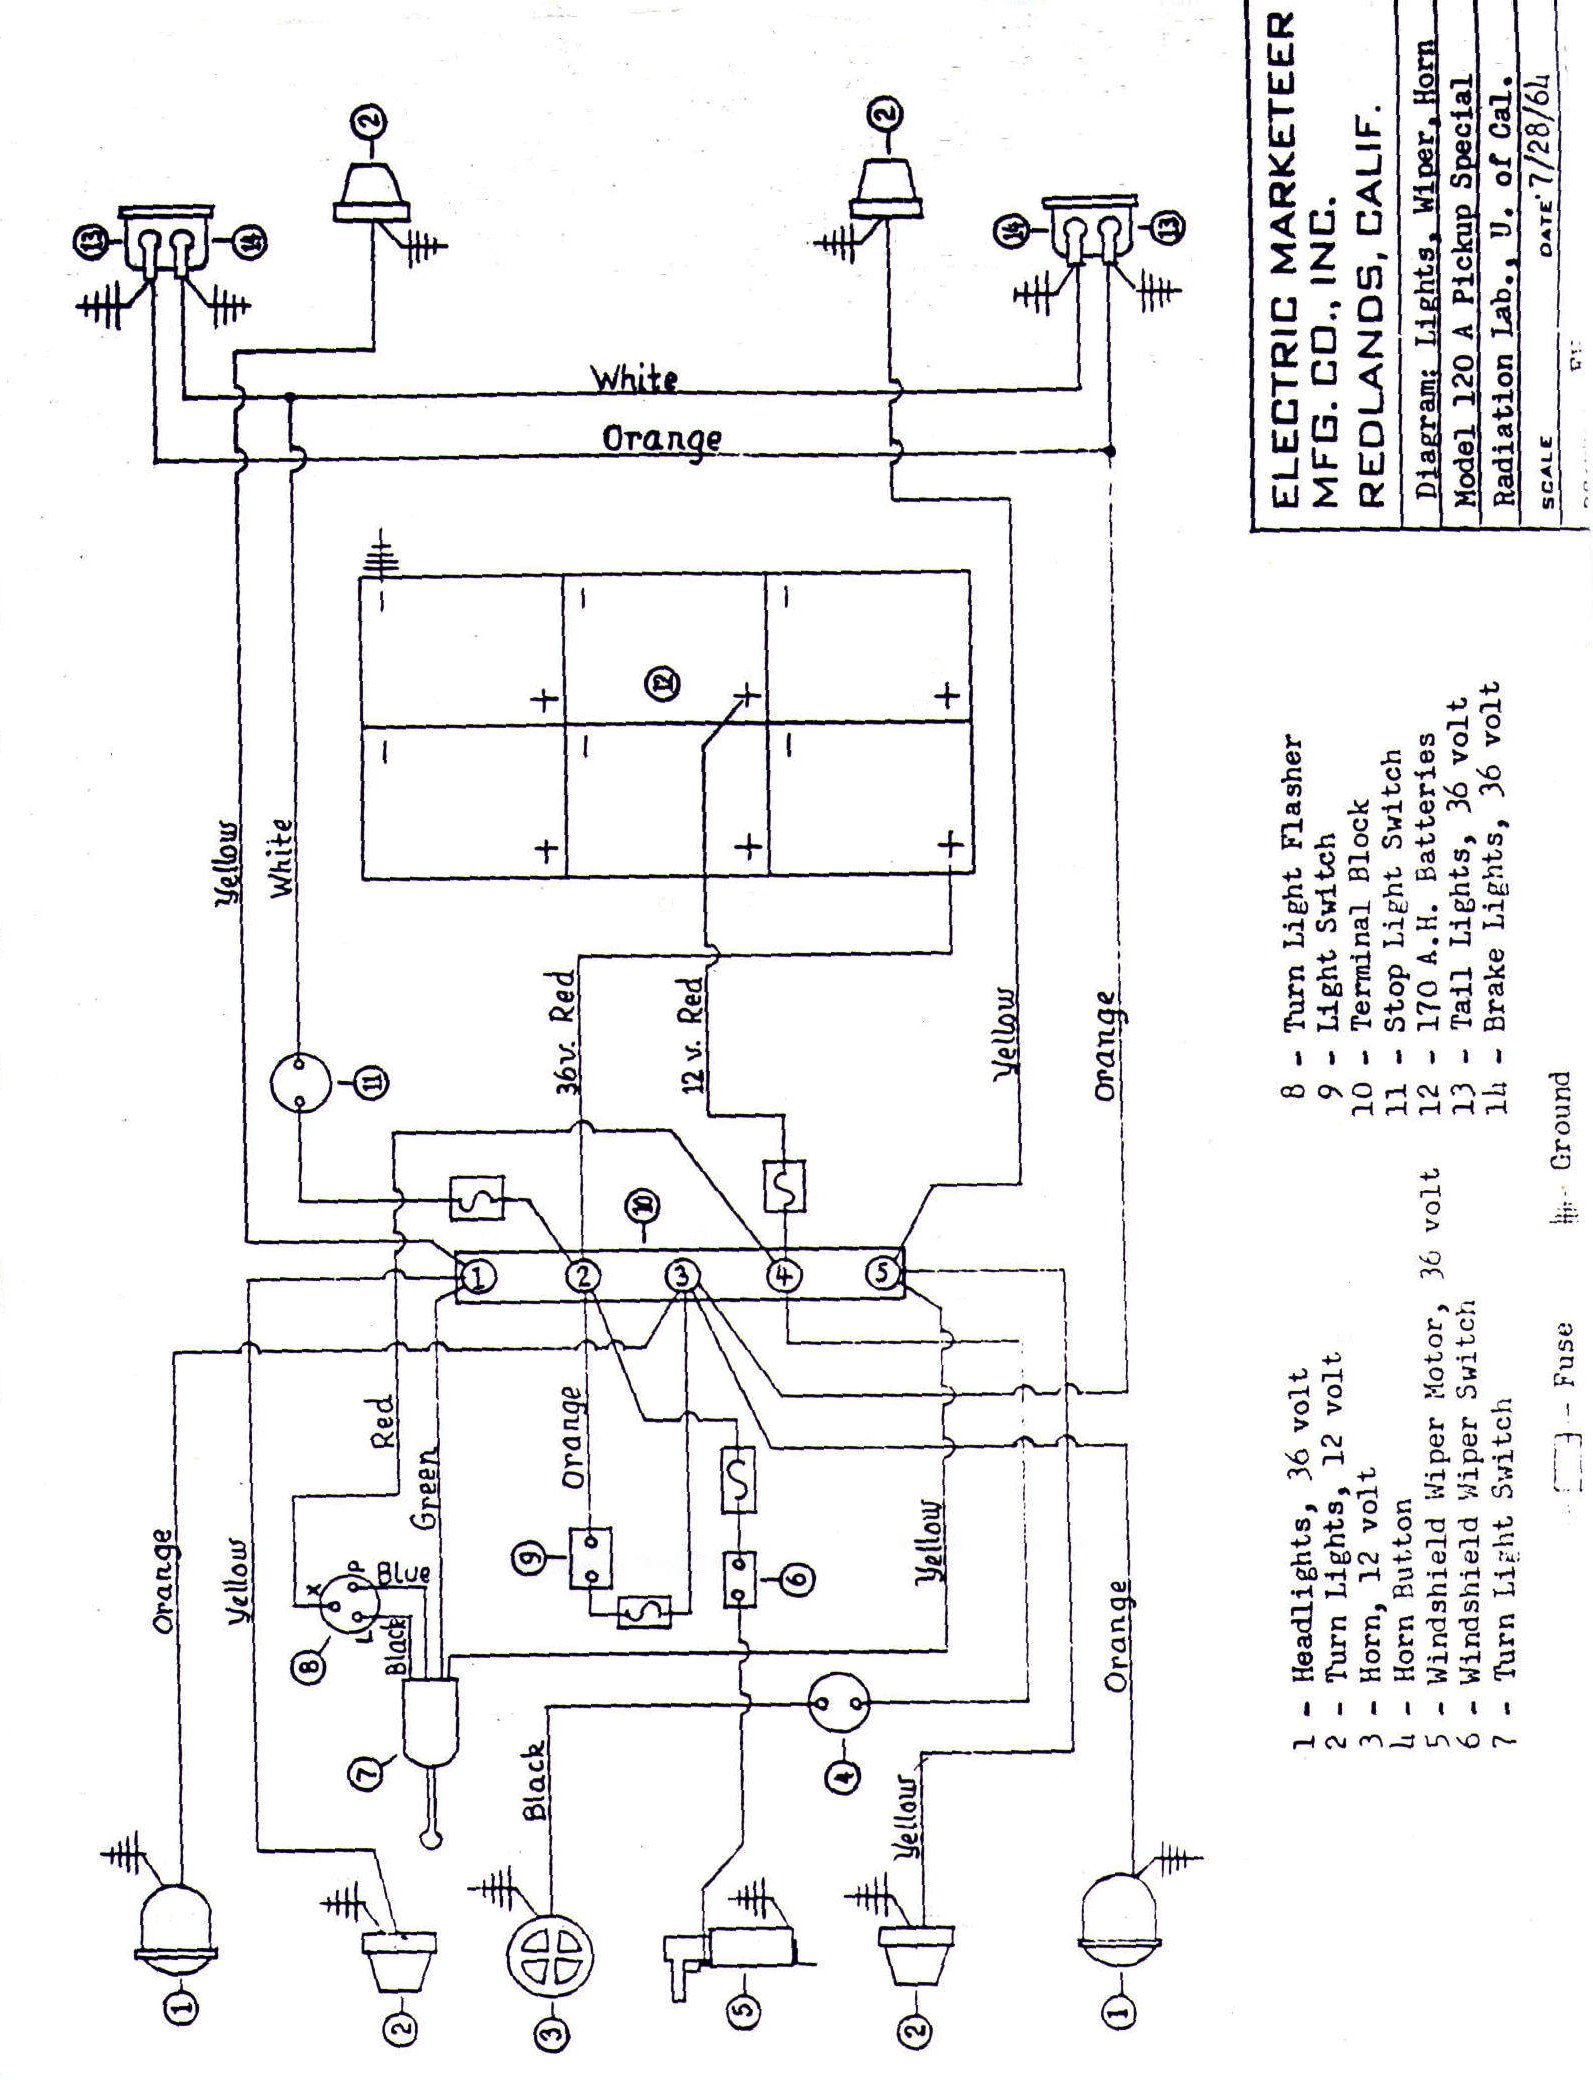 Markeeter_Wiring_Diagram_2 vintagegolfcartparts com westinghouse golf cart wiring diagram at panicattacktreatment.co